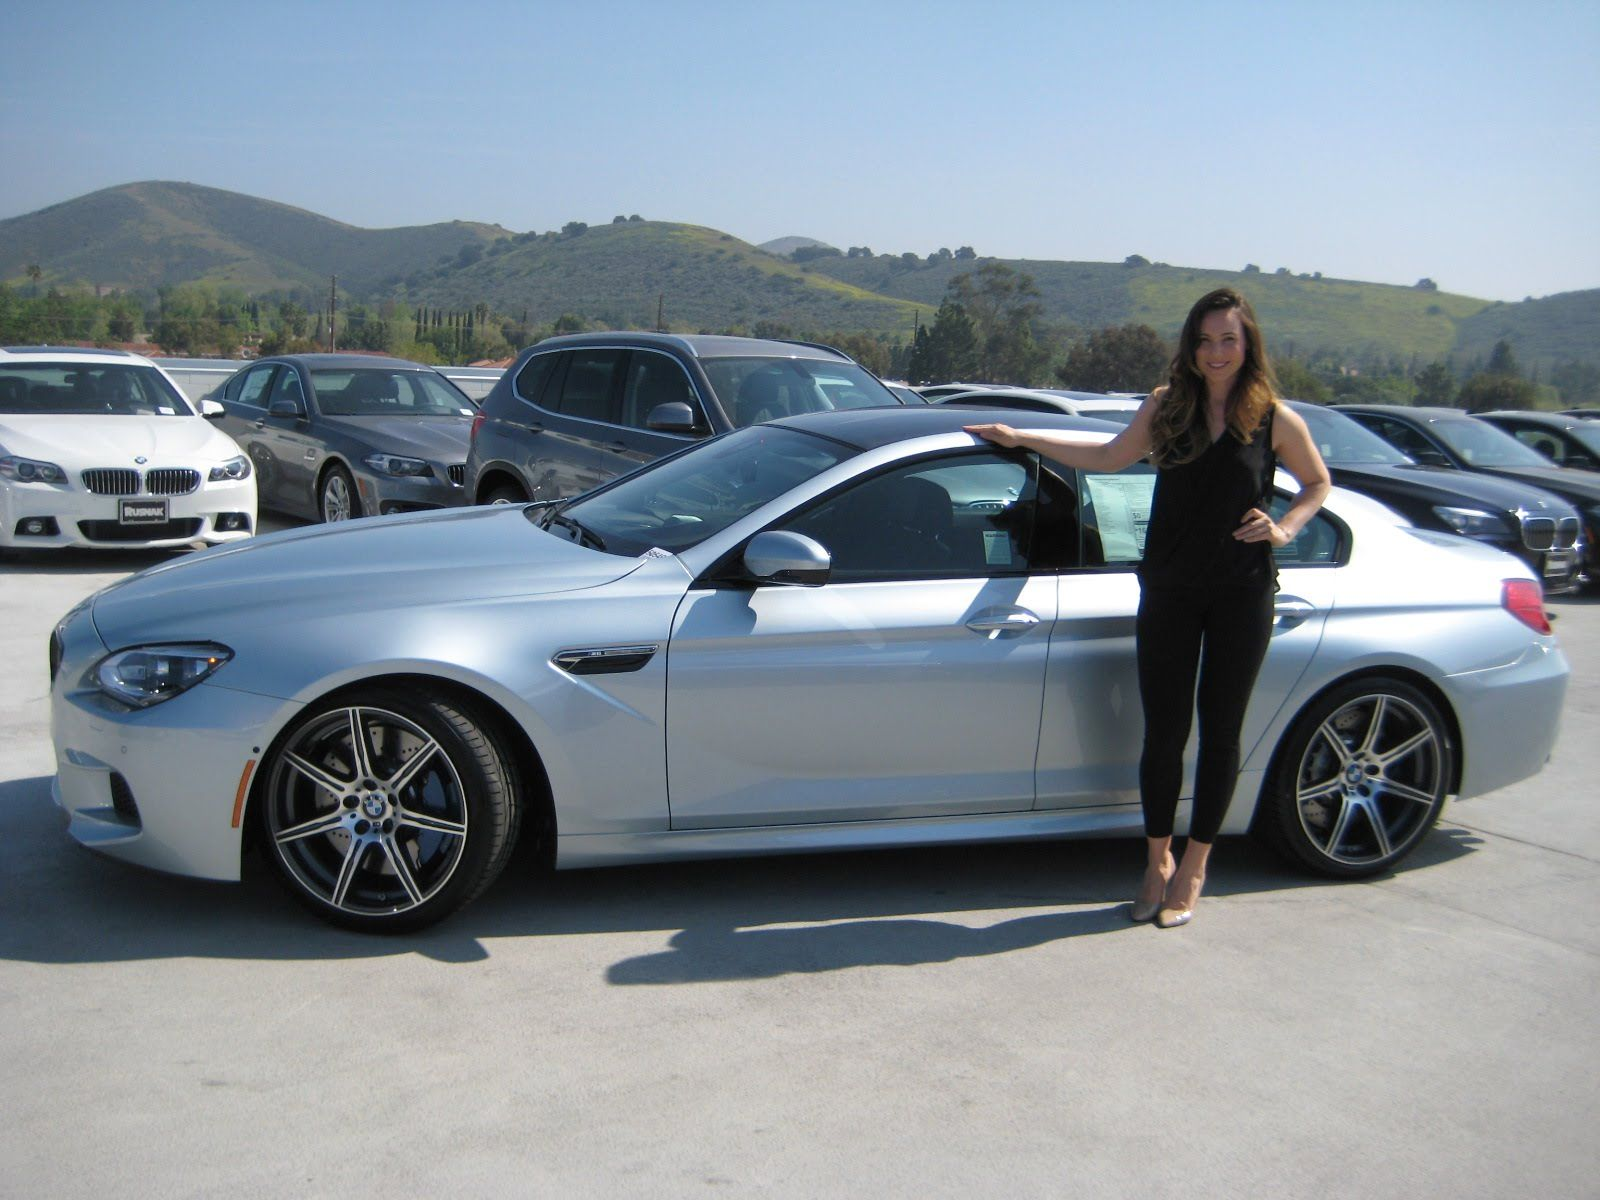 New Bmw M6 Gran Coupe 20 Wheels Exhaust Sound Review With Images